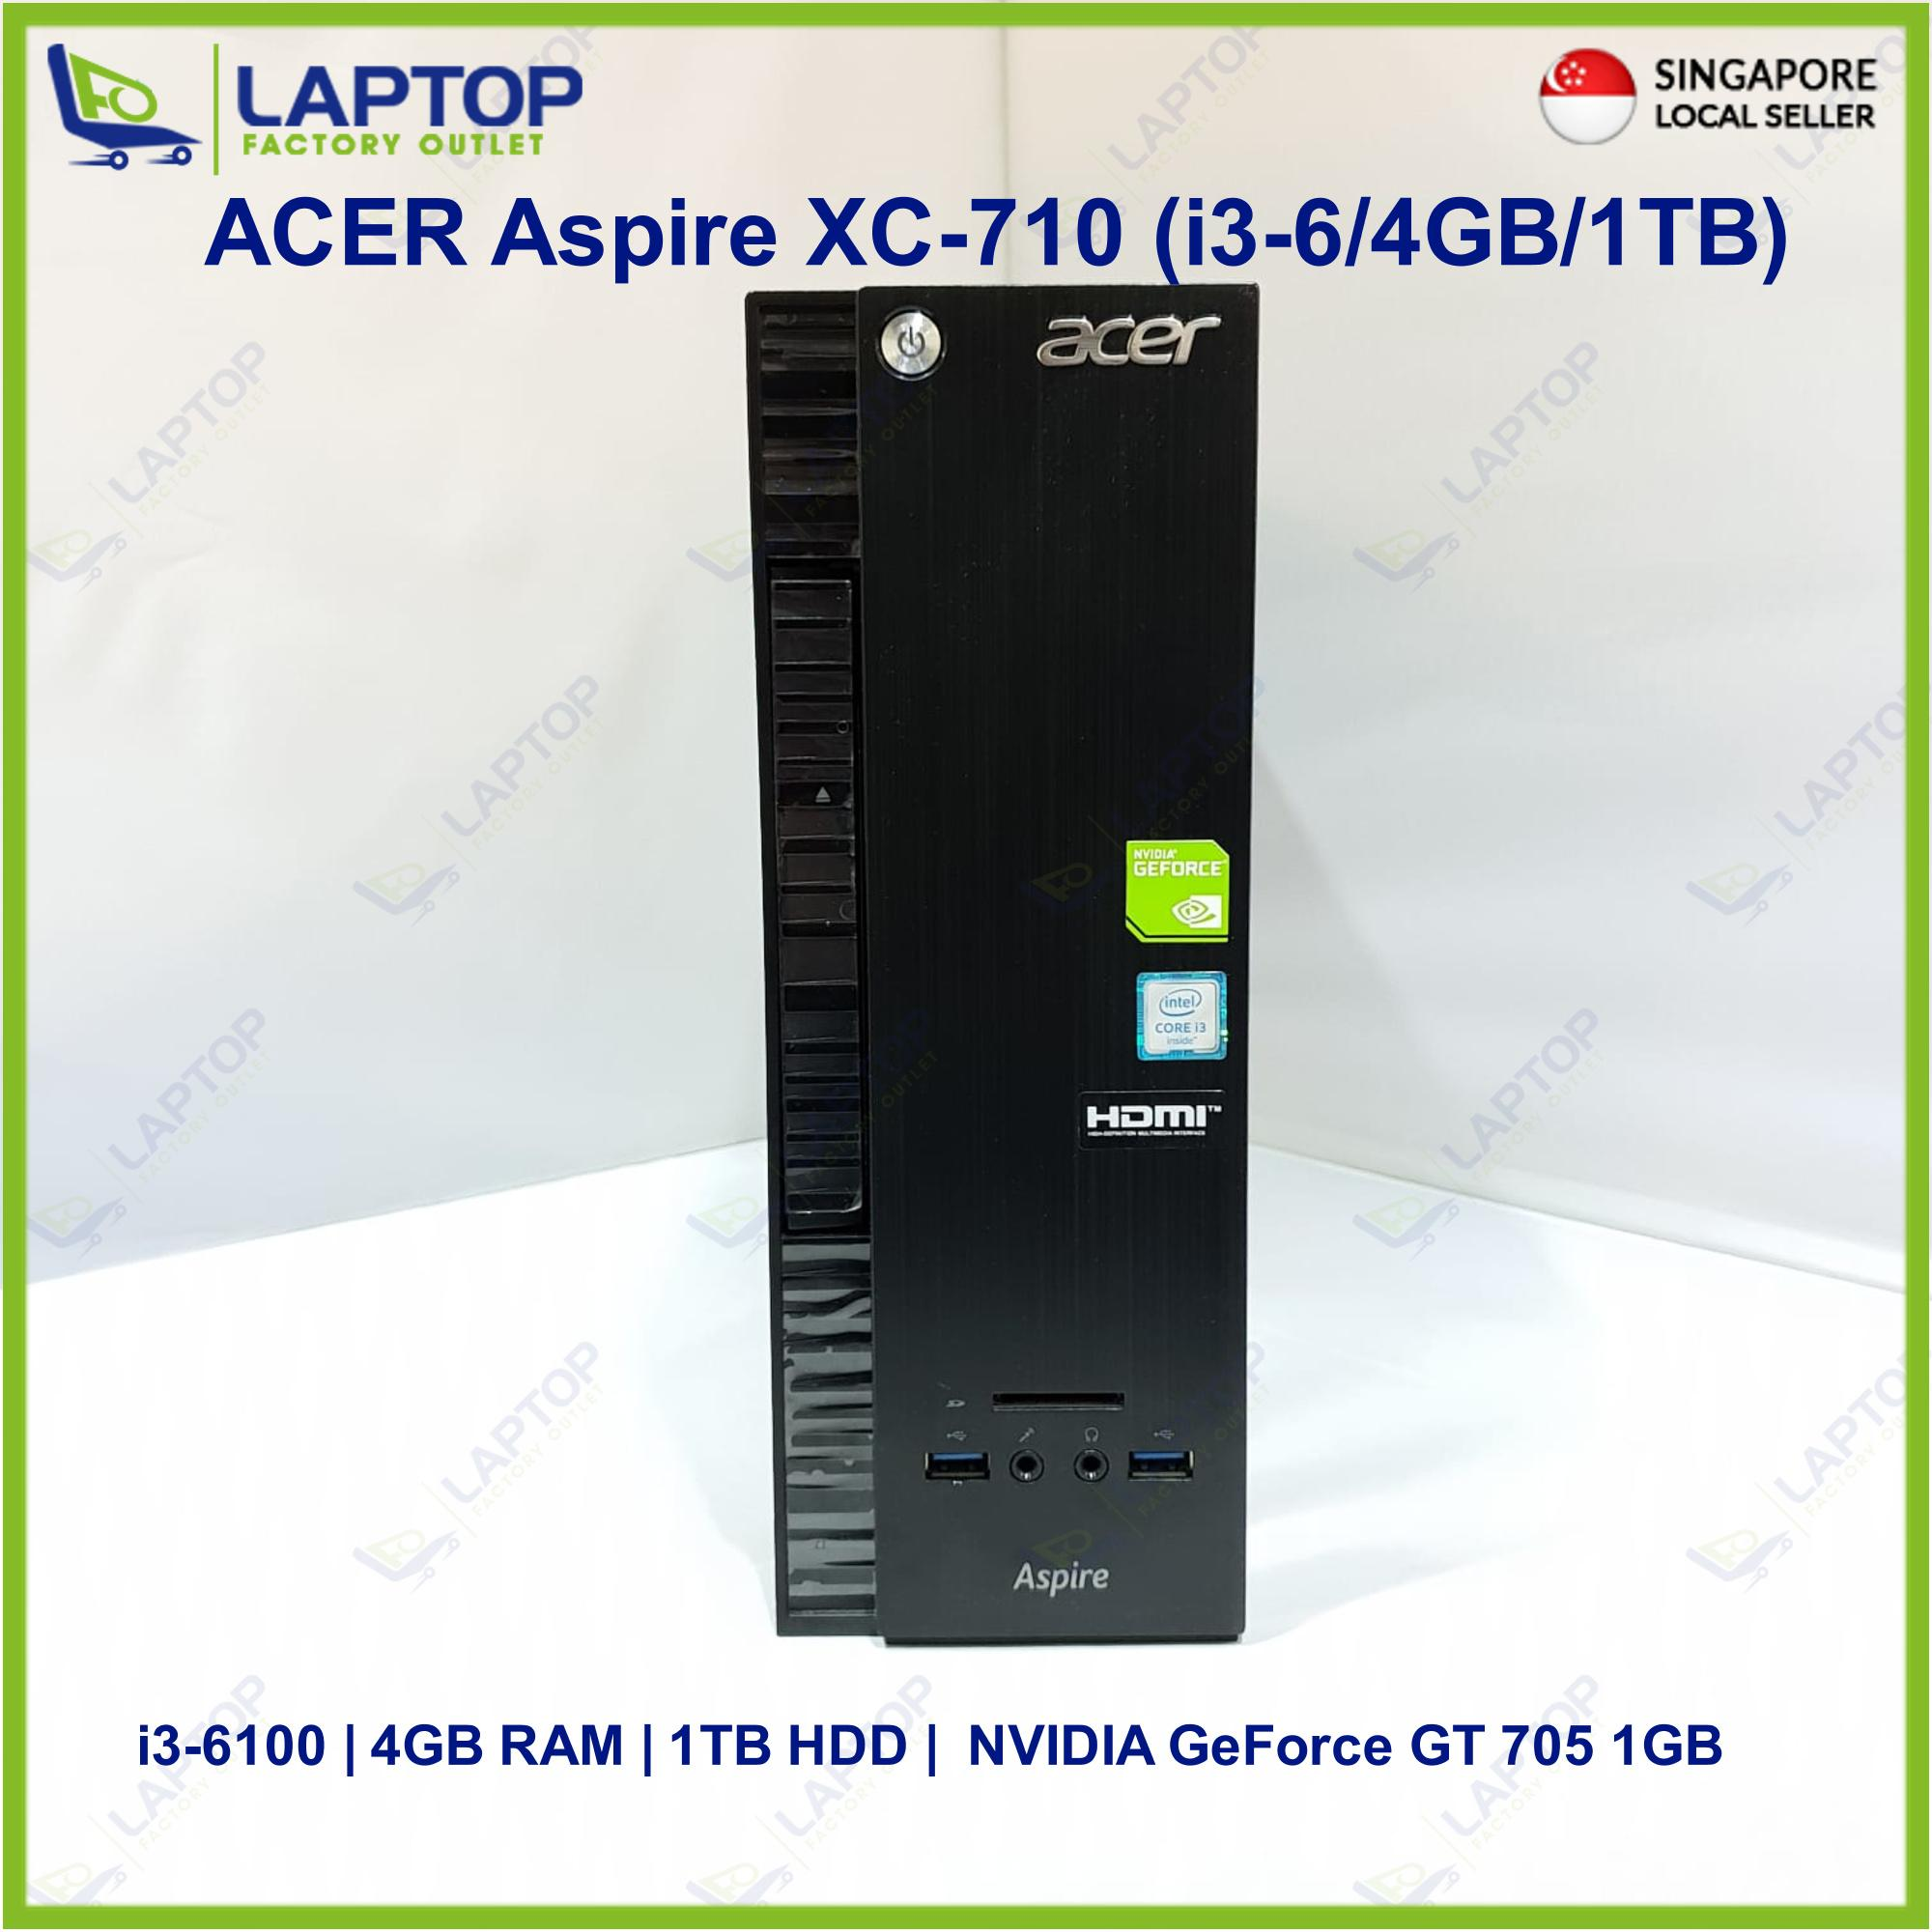 Acer Aspire Xc-710 (i3-6/4gb/1tb) Premium Preowned [refurbished] By Laptop Factory Outlet (capitaland Merchant).